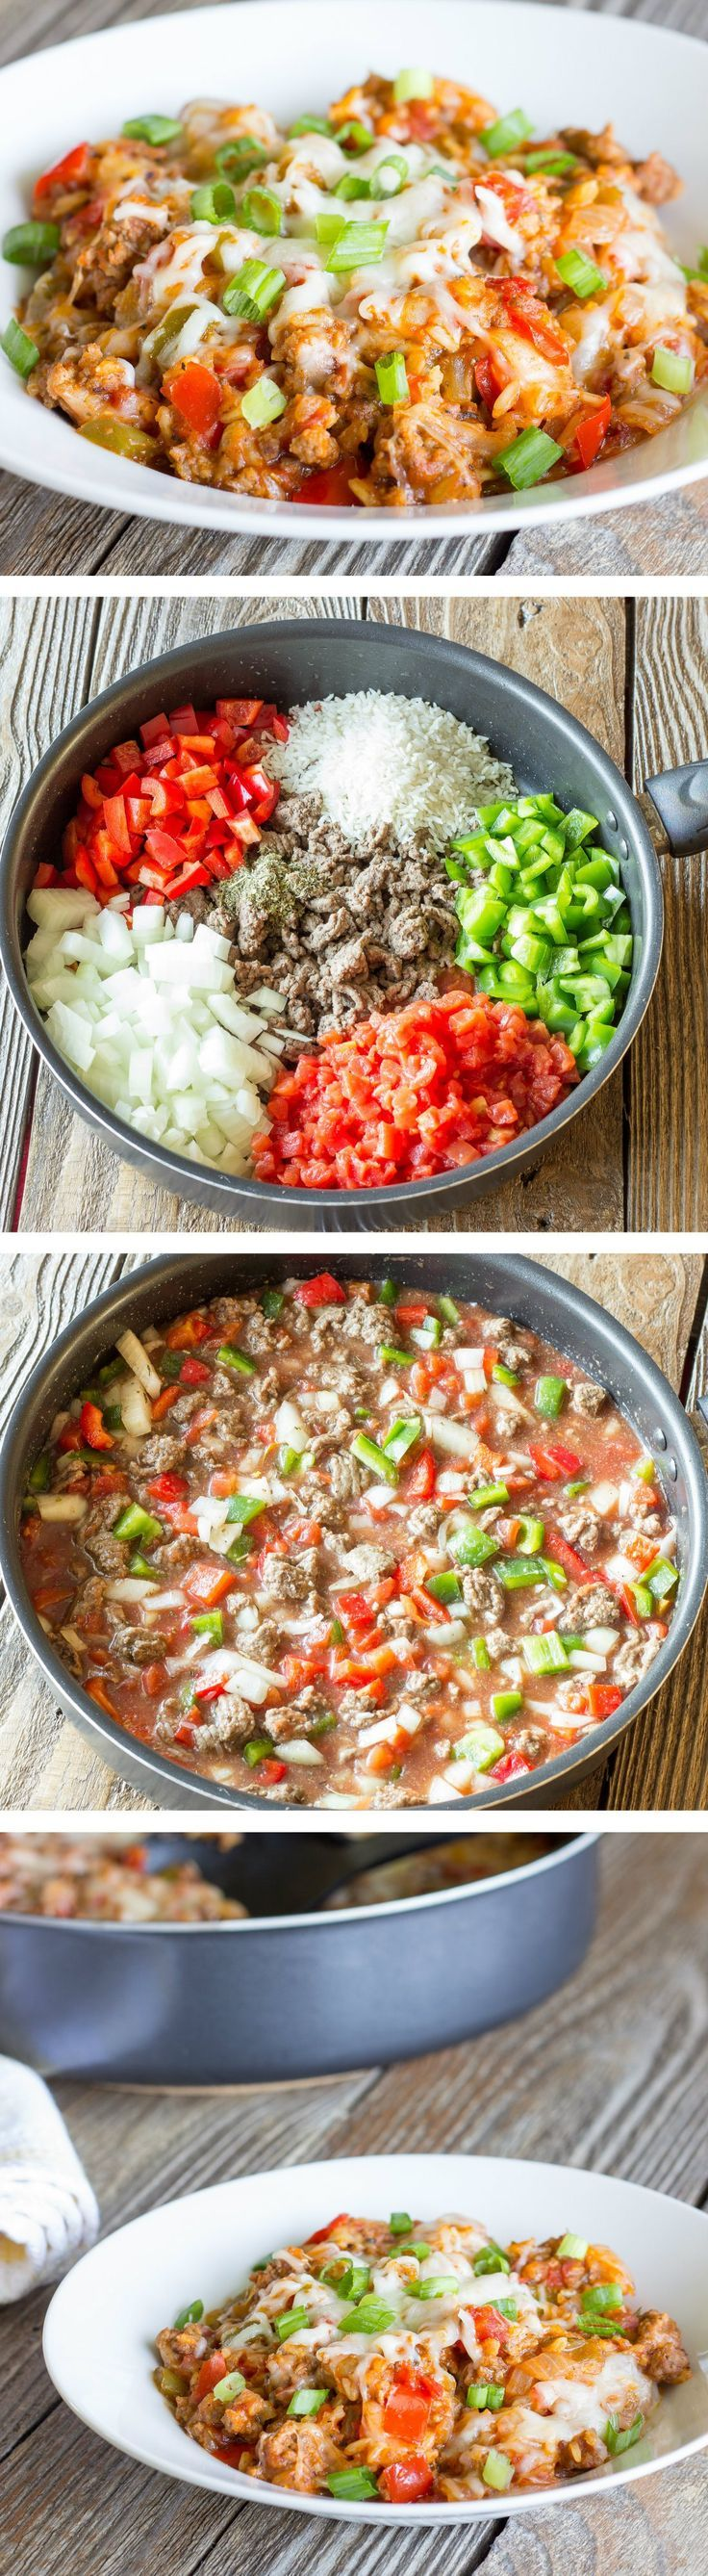 Beef, rice, cheese, peppers, and seasoning all cooked together in one pot.